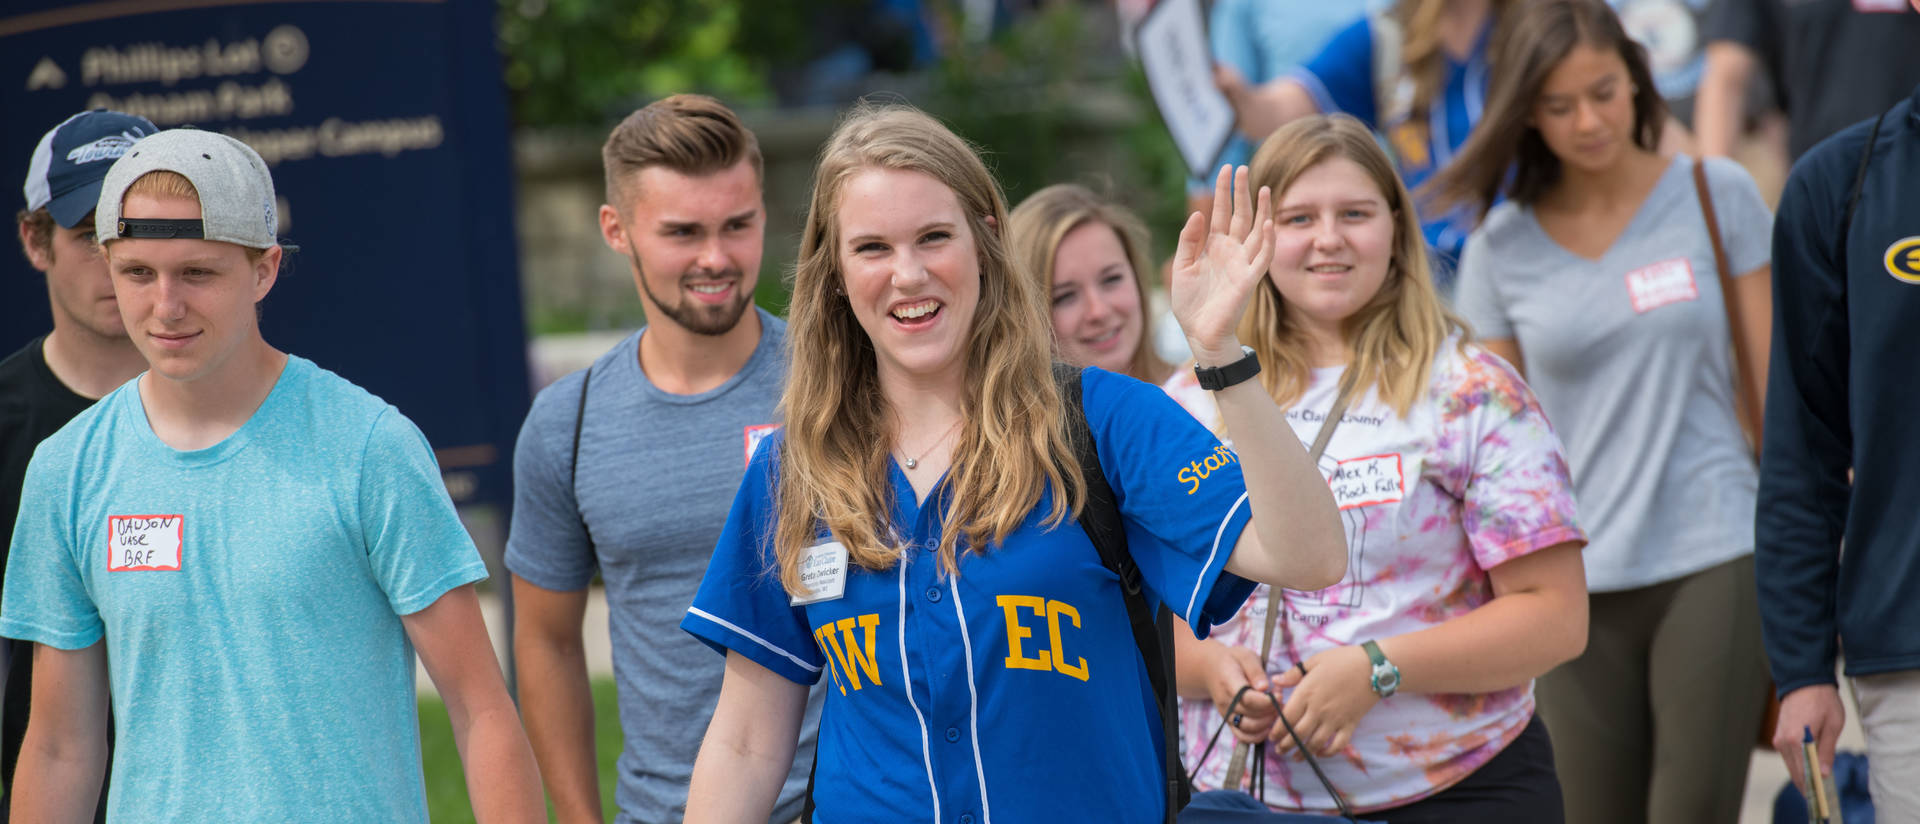 Orientation leader in a blue uwec t-shirt walking with new students